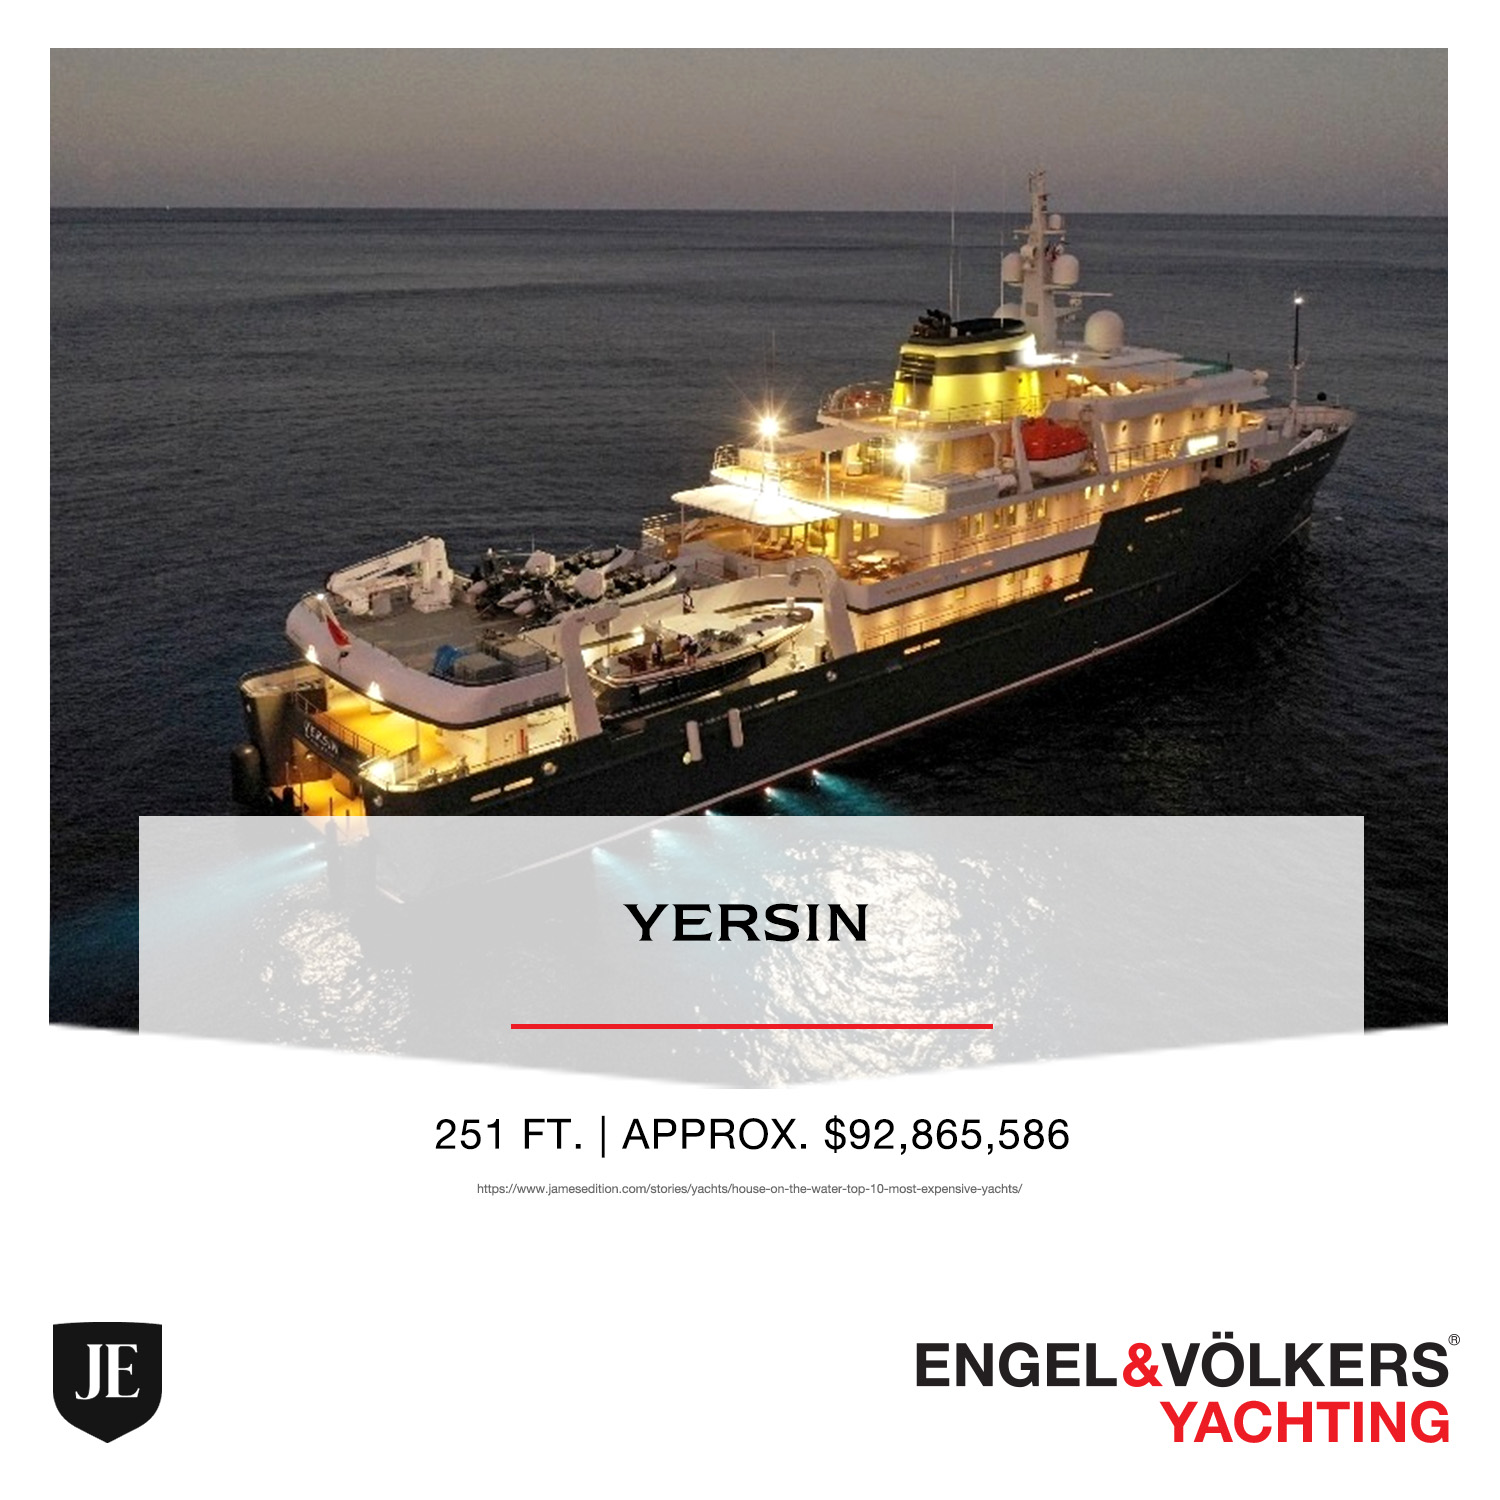 Yersin YACHT ENGEL & VOLKERS YACHTING